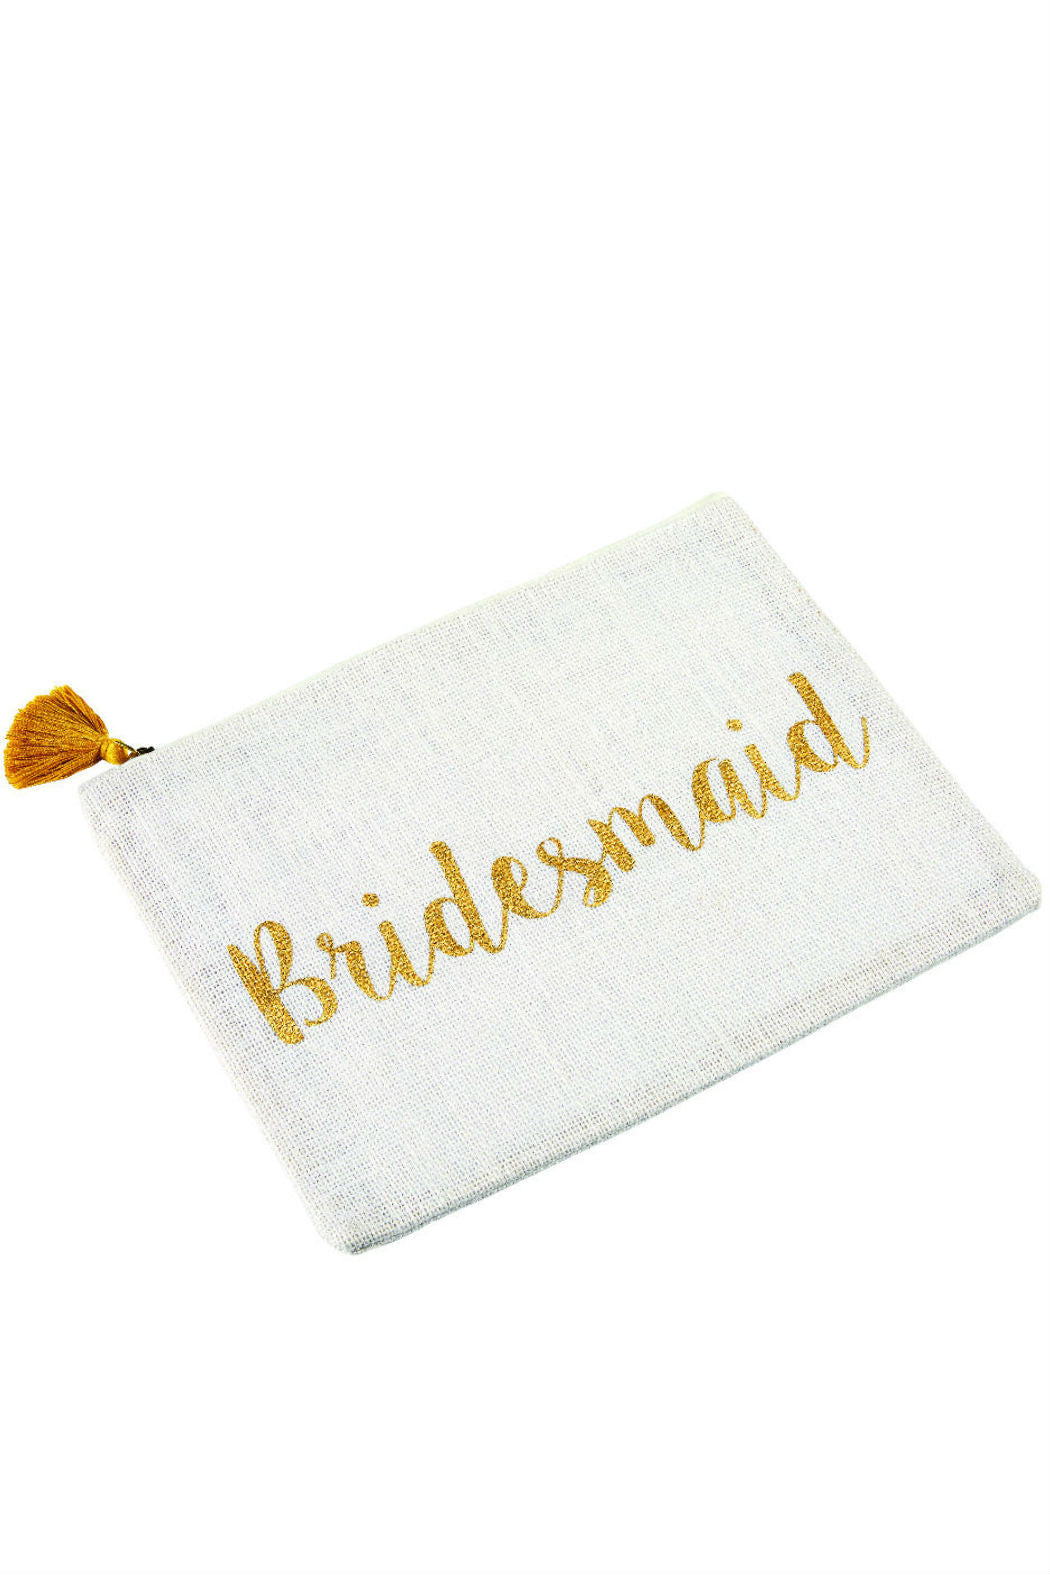 Bridesmaid Carry All Case, bridesmaid gift, bridesmaid bag, maid of honor, wedding, cute wedding - New Orientation - 2